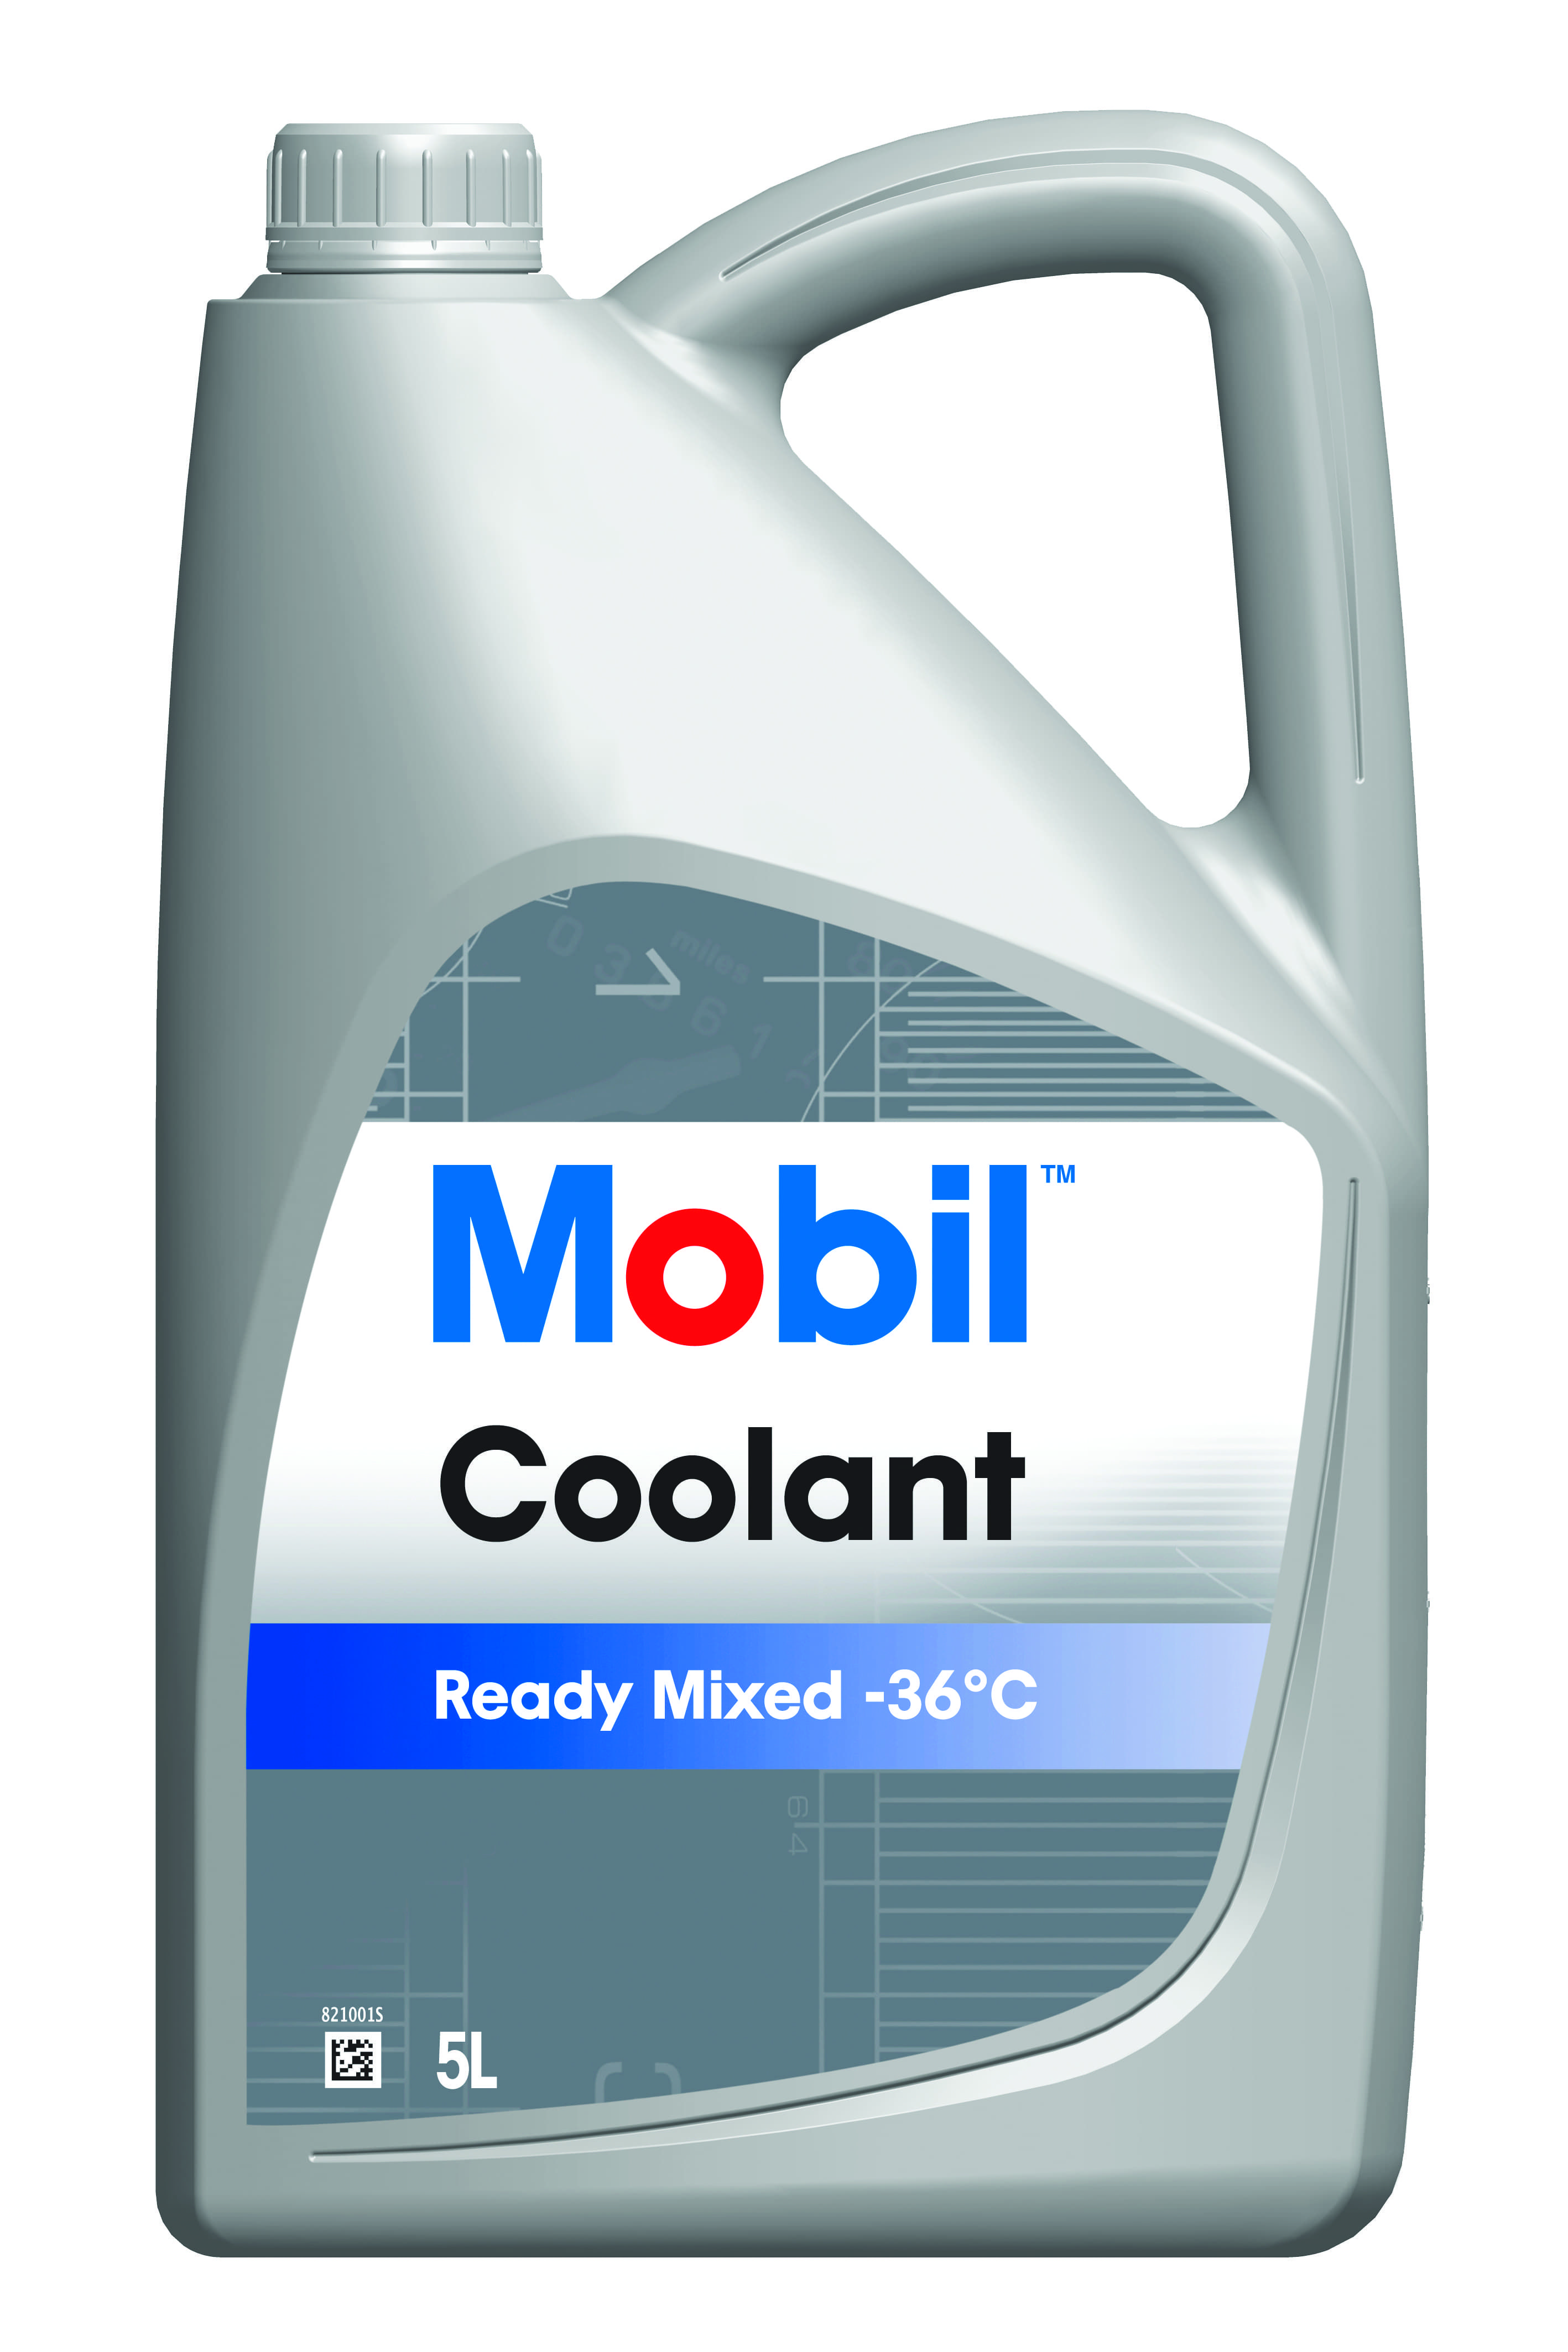 Mobil Coolant Ready Mixed -36°C